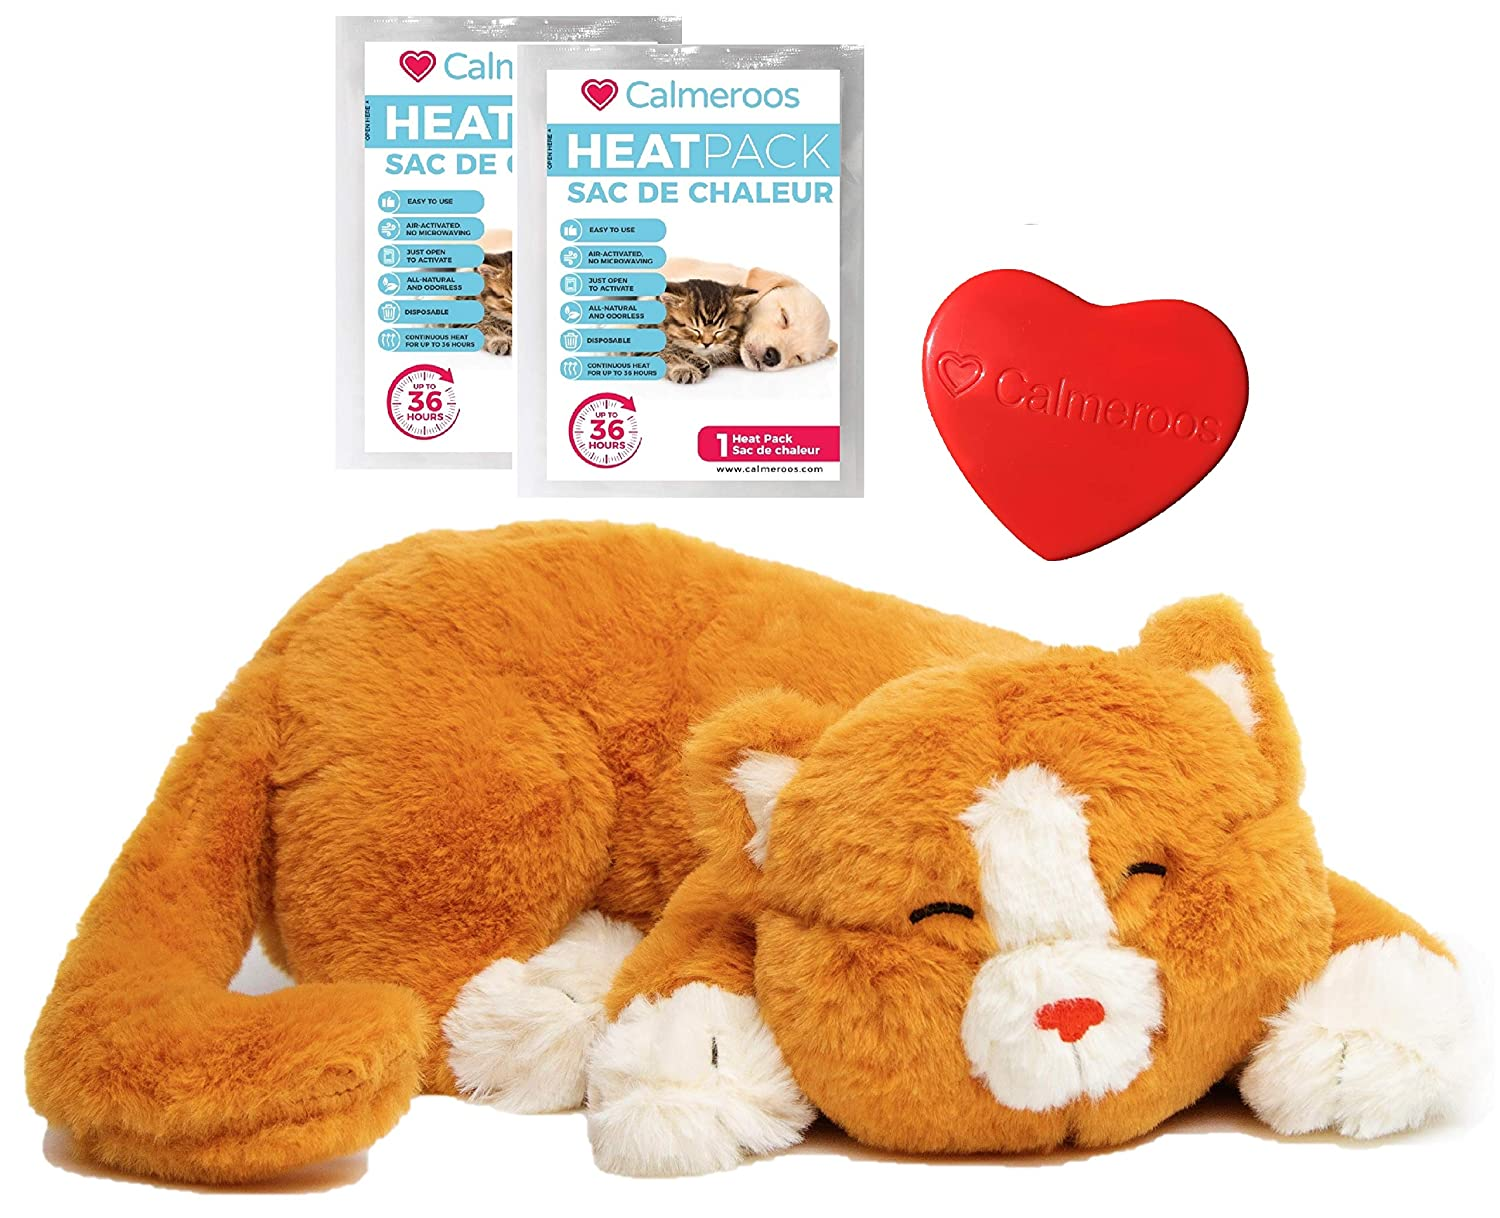 Calmeroos Kitty Heartbeat Toy Sleep Aid For Smart Pets Who Love To Snuggle And 2 Heat Packs Kitten Anxiety Relief Soother For Cats Puppy Cuddle Calming Behavioral Aid For Pets Amazon In Pet